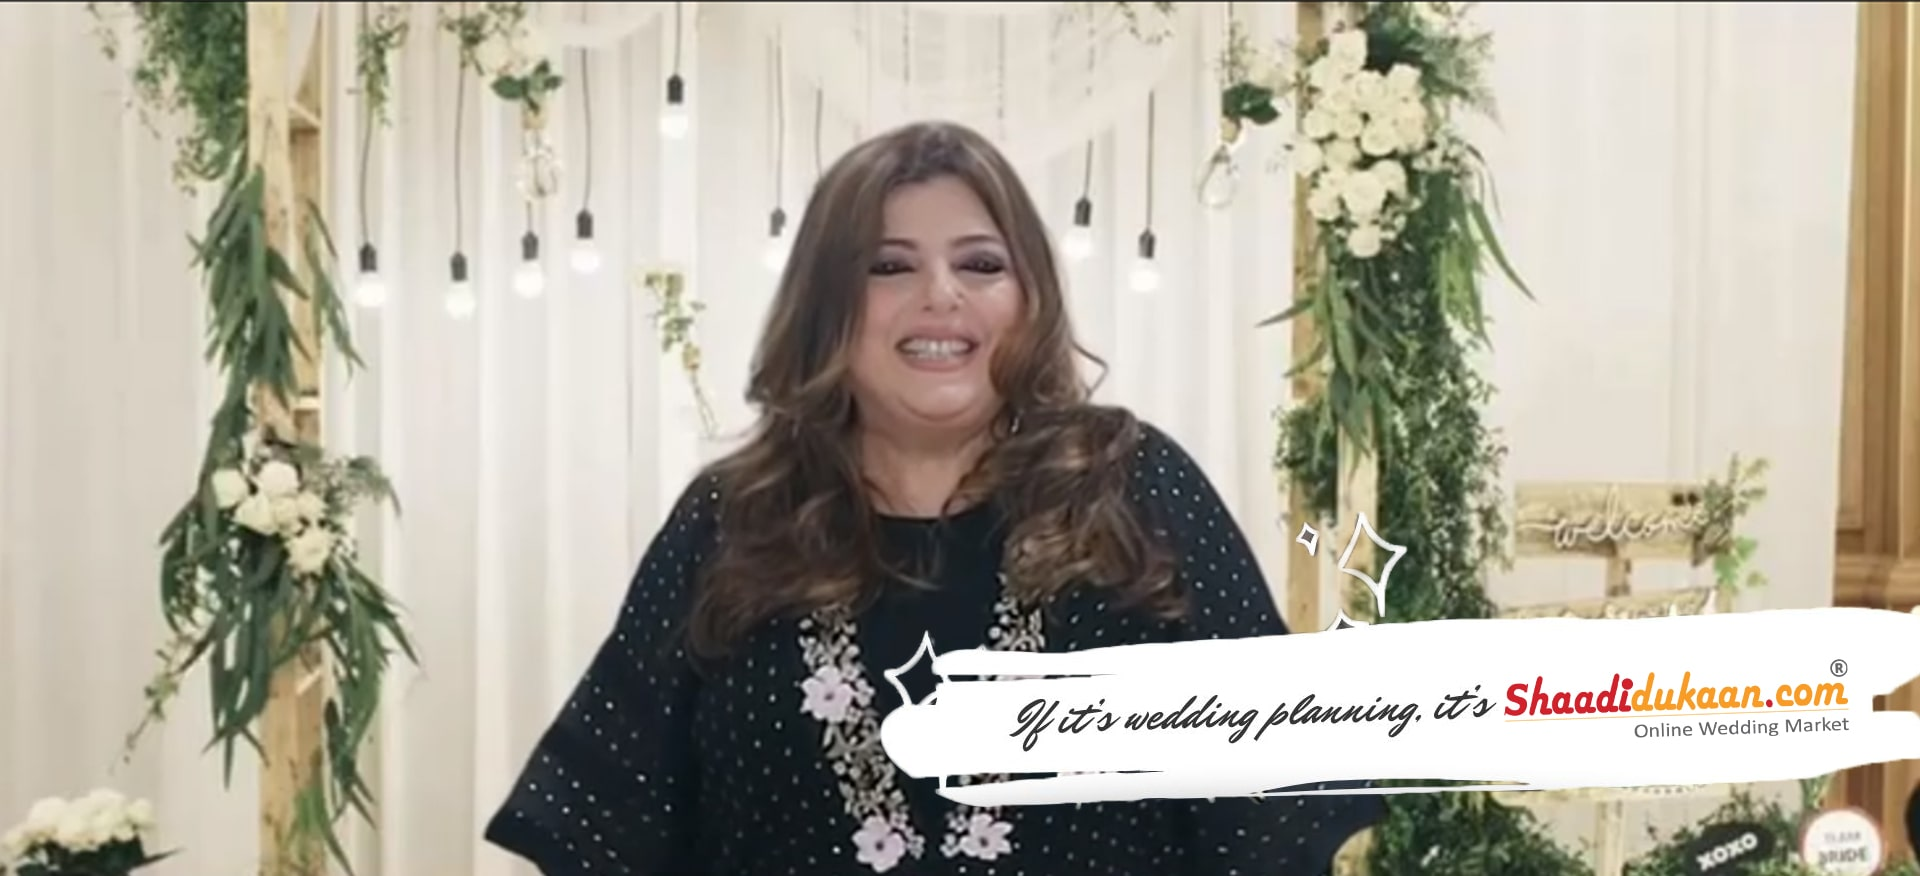 Shaadidukaan.com Launches Commercial Shout Out 2021 With Delnaaz Irani - #Atrangi Wedding Planning